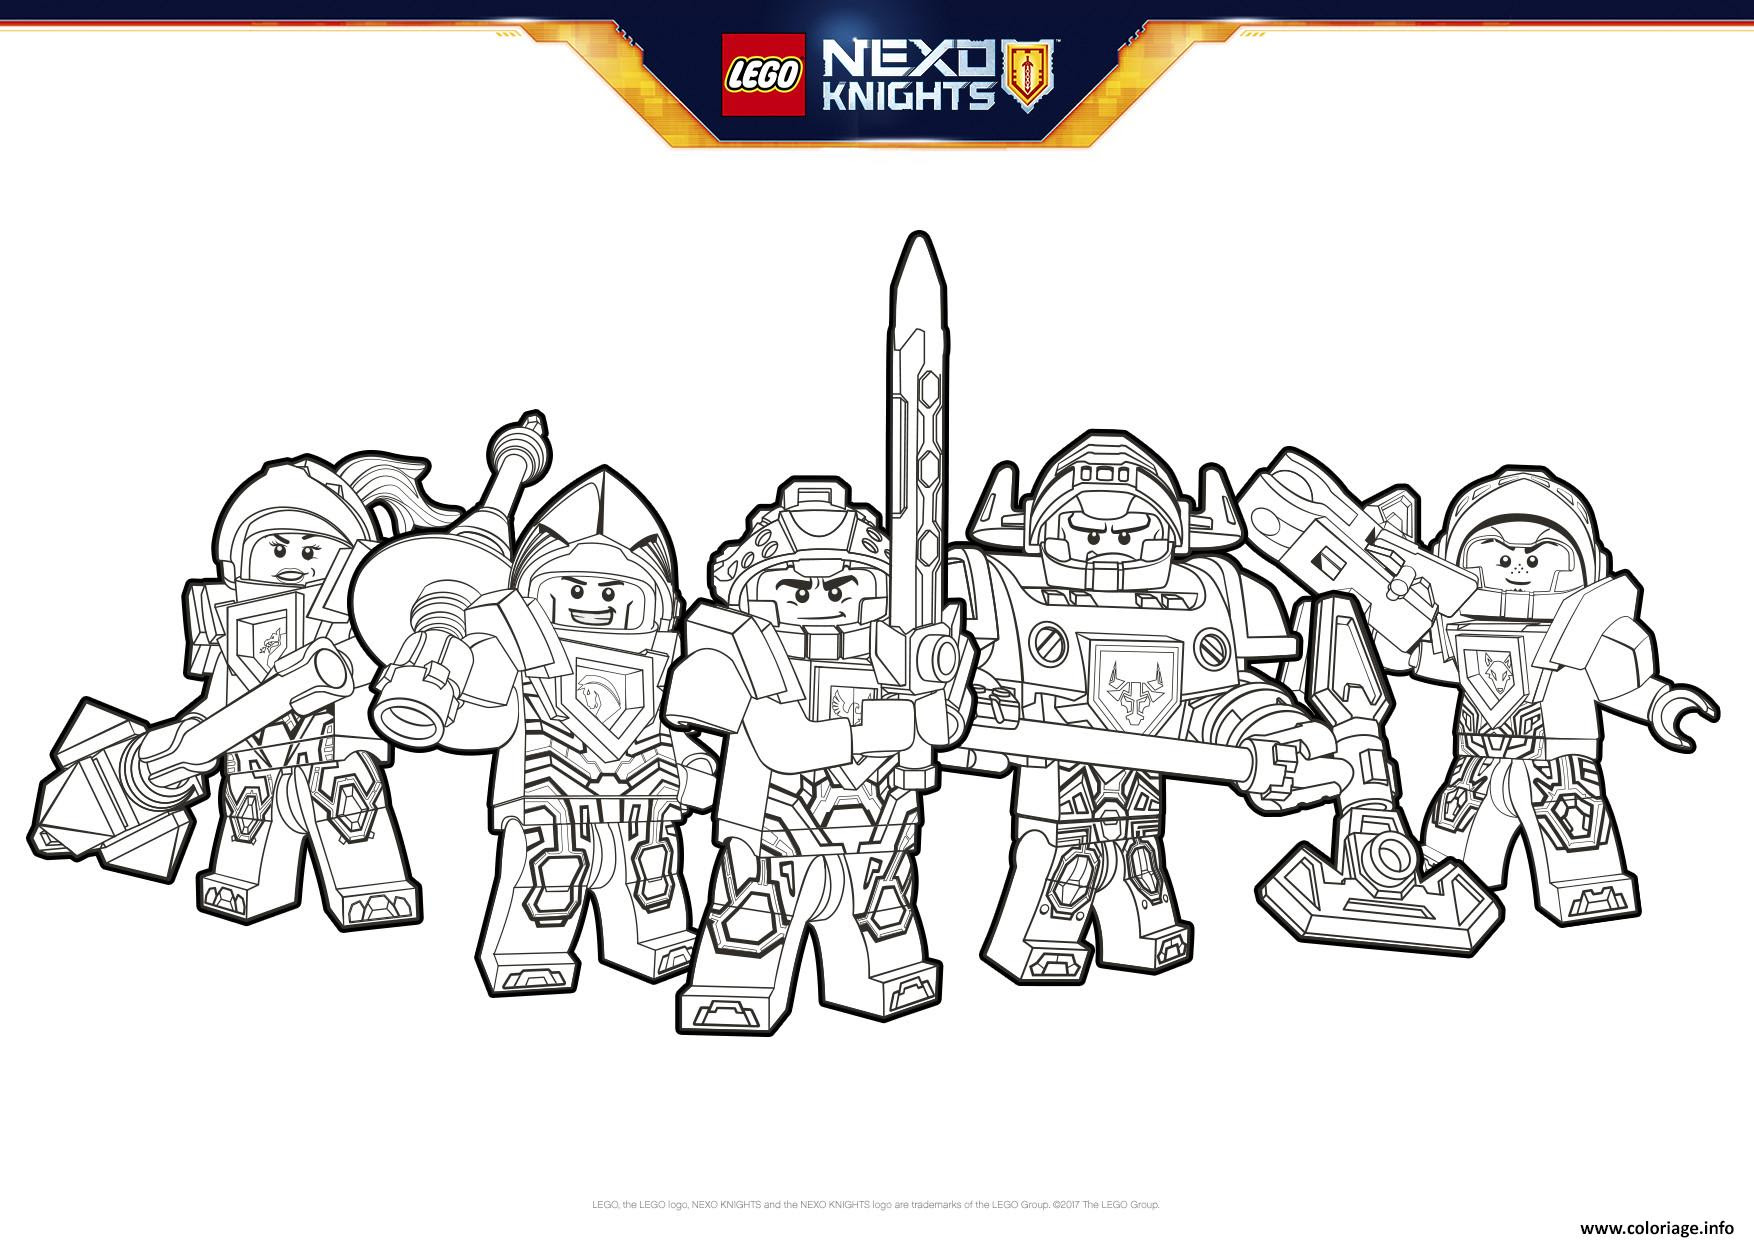 Coloriage Lego Nexo Knights Formation Dessin   Imprimer